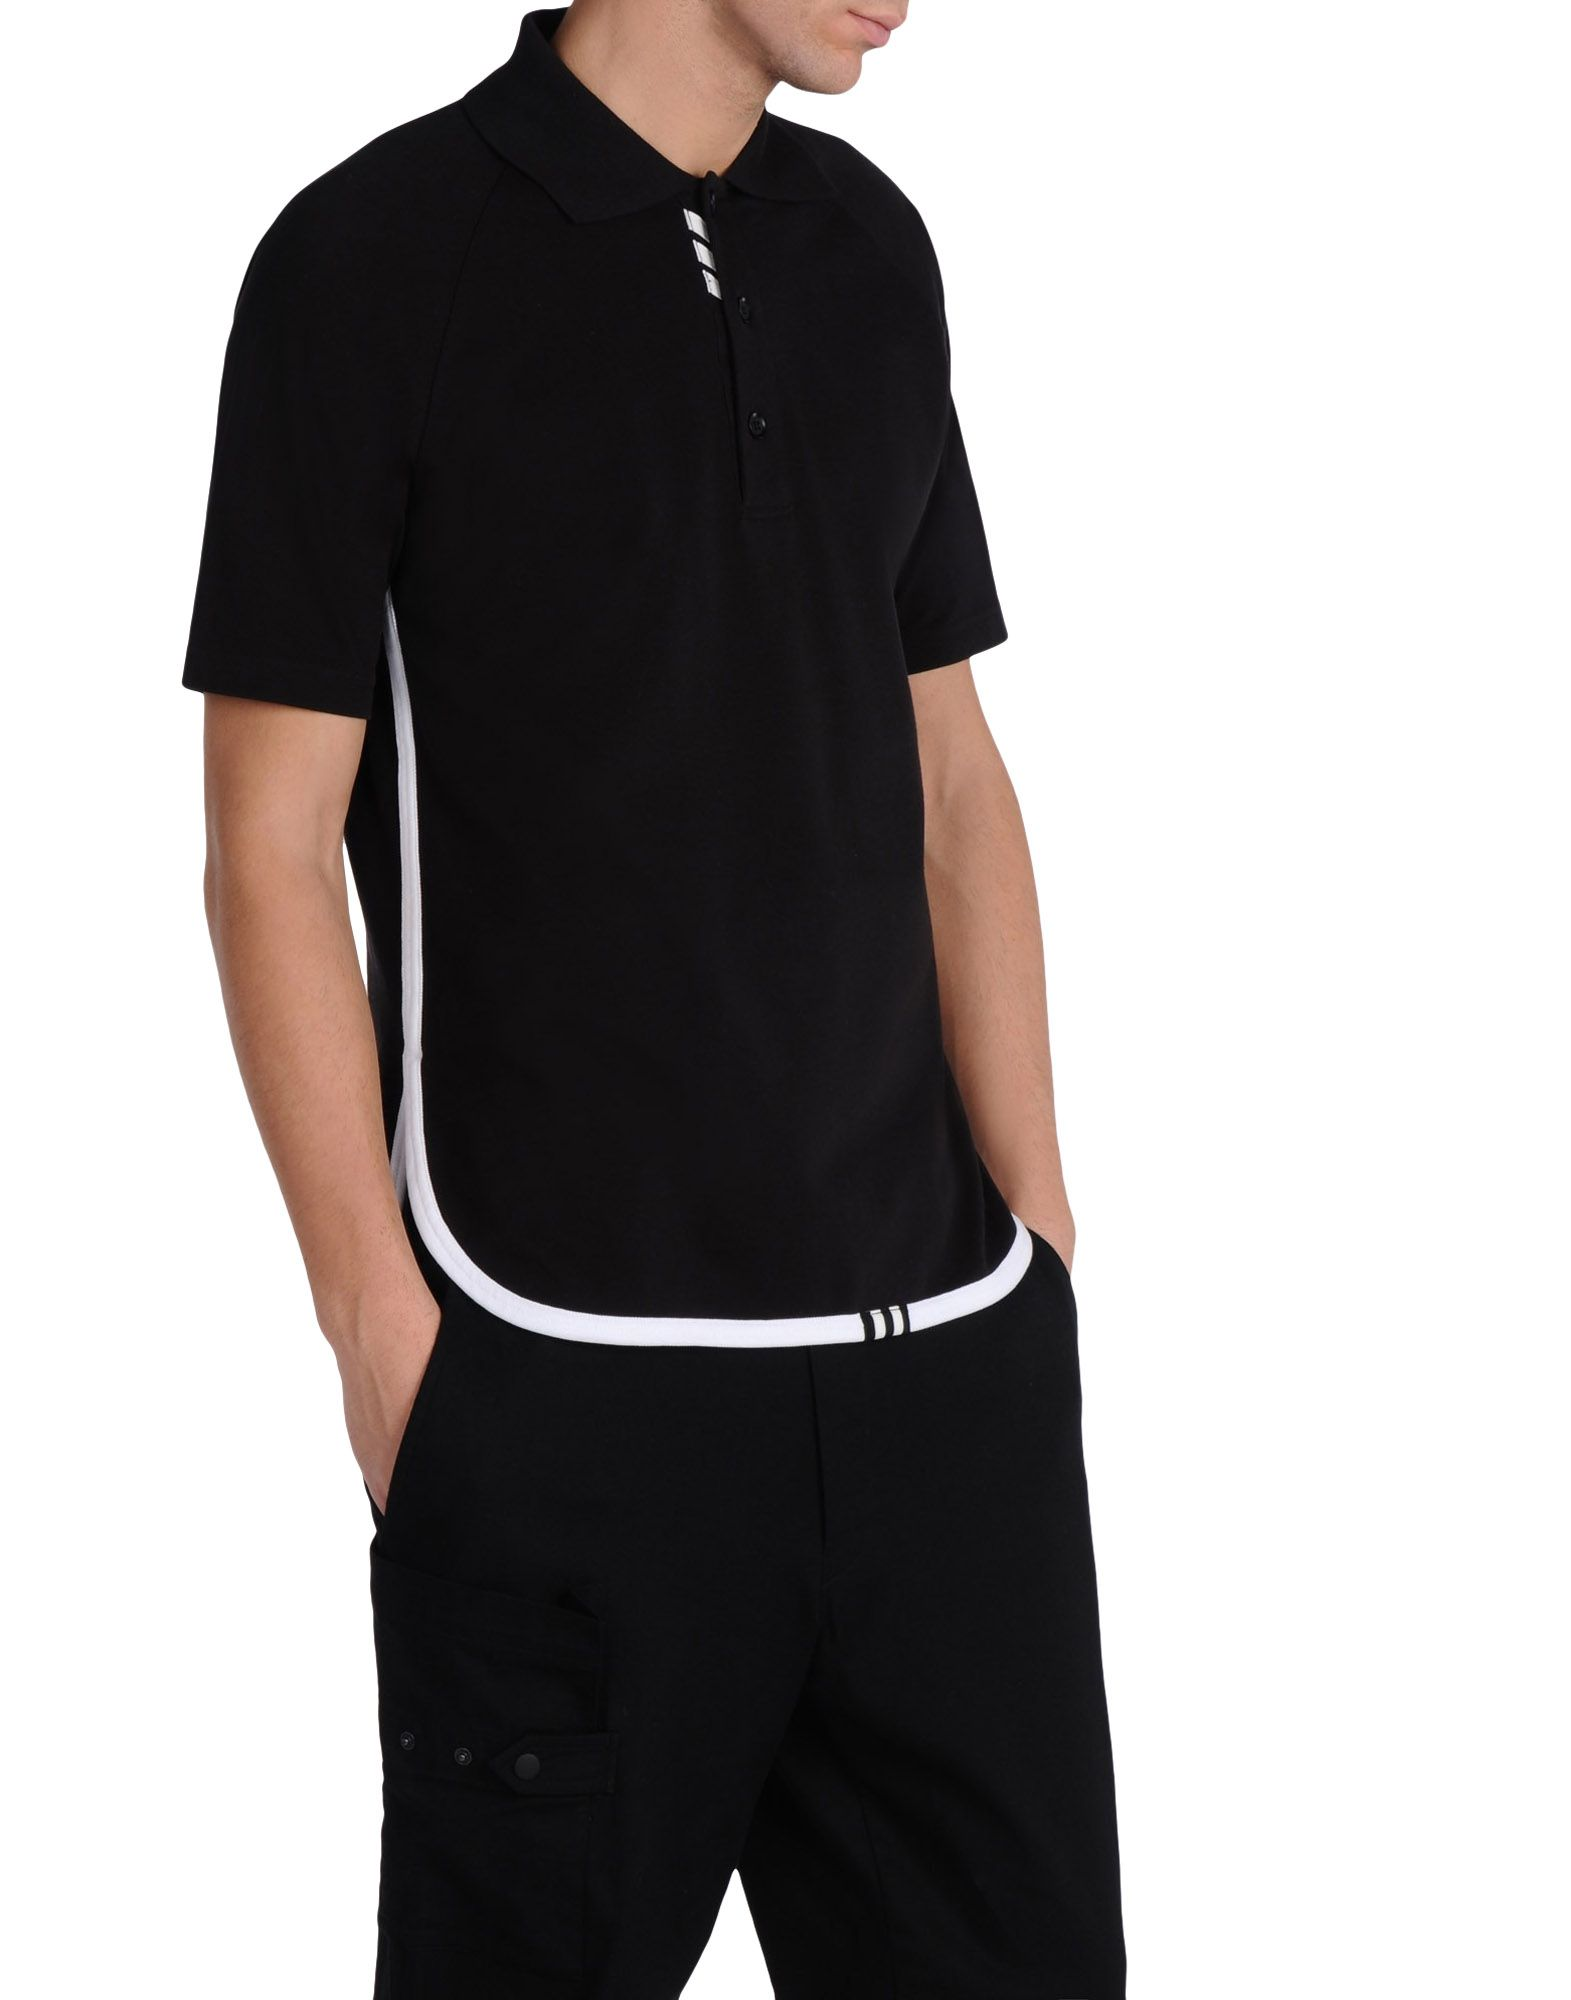 polo y 3 lux polo shirt for men online official store. Black Bedroom Furniture Sets. Home Design Ideas